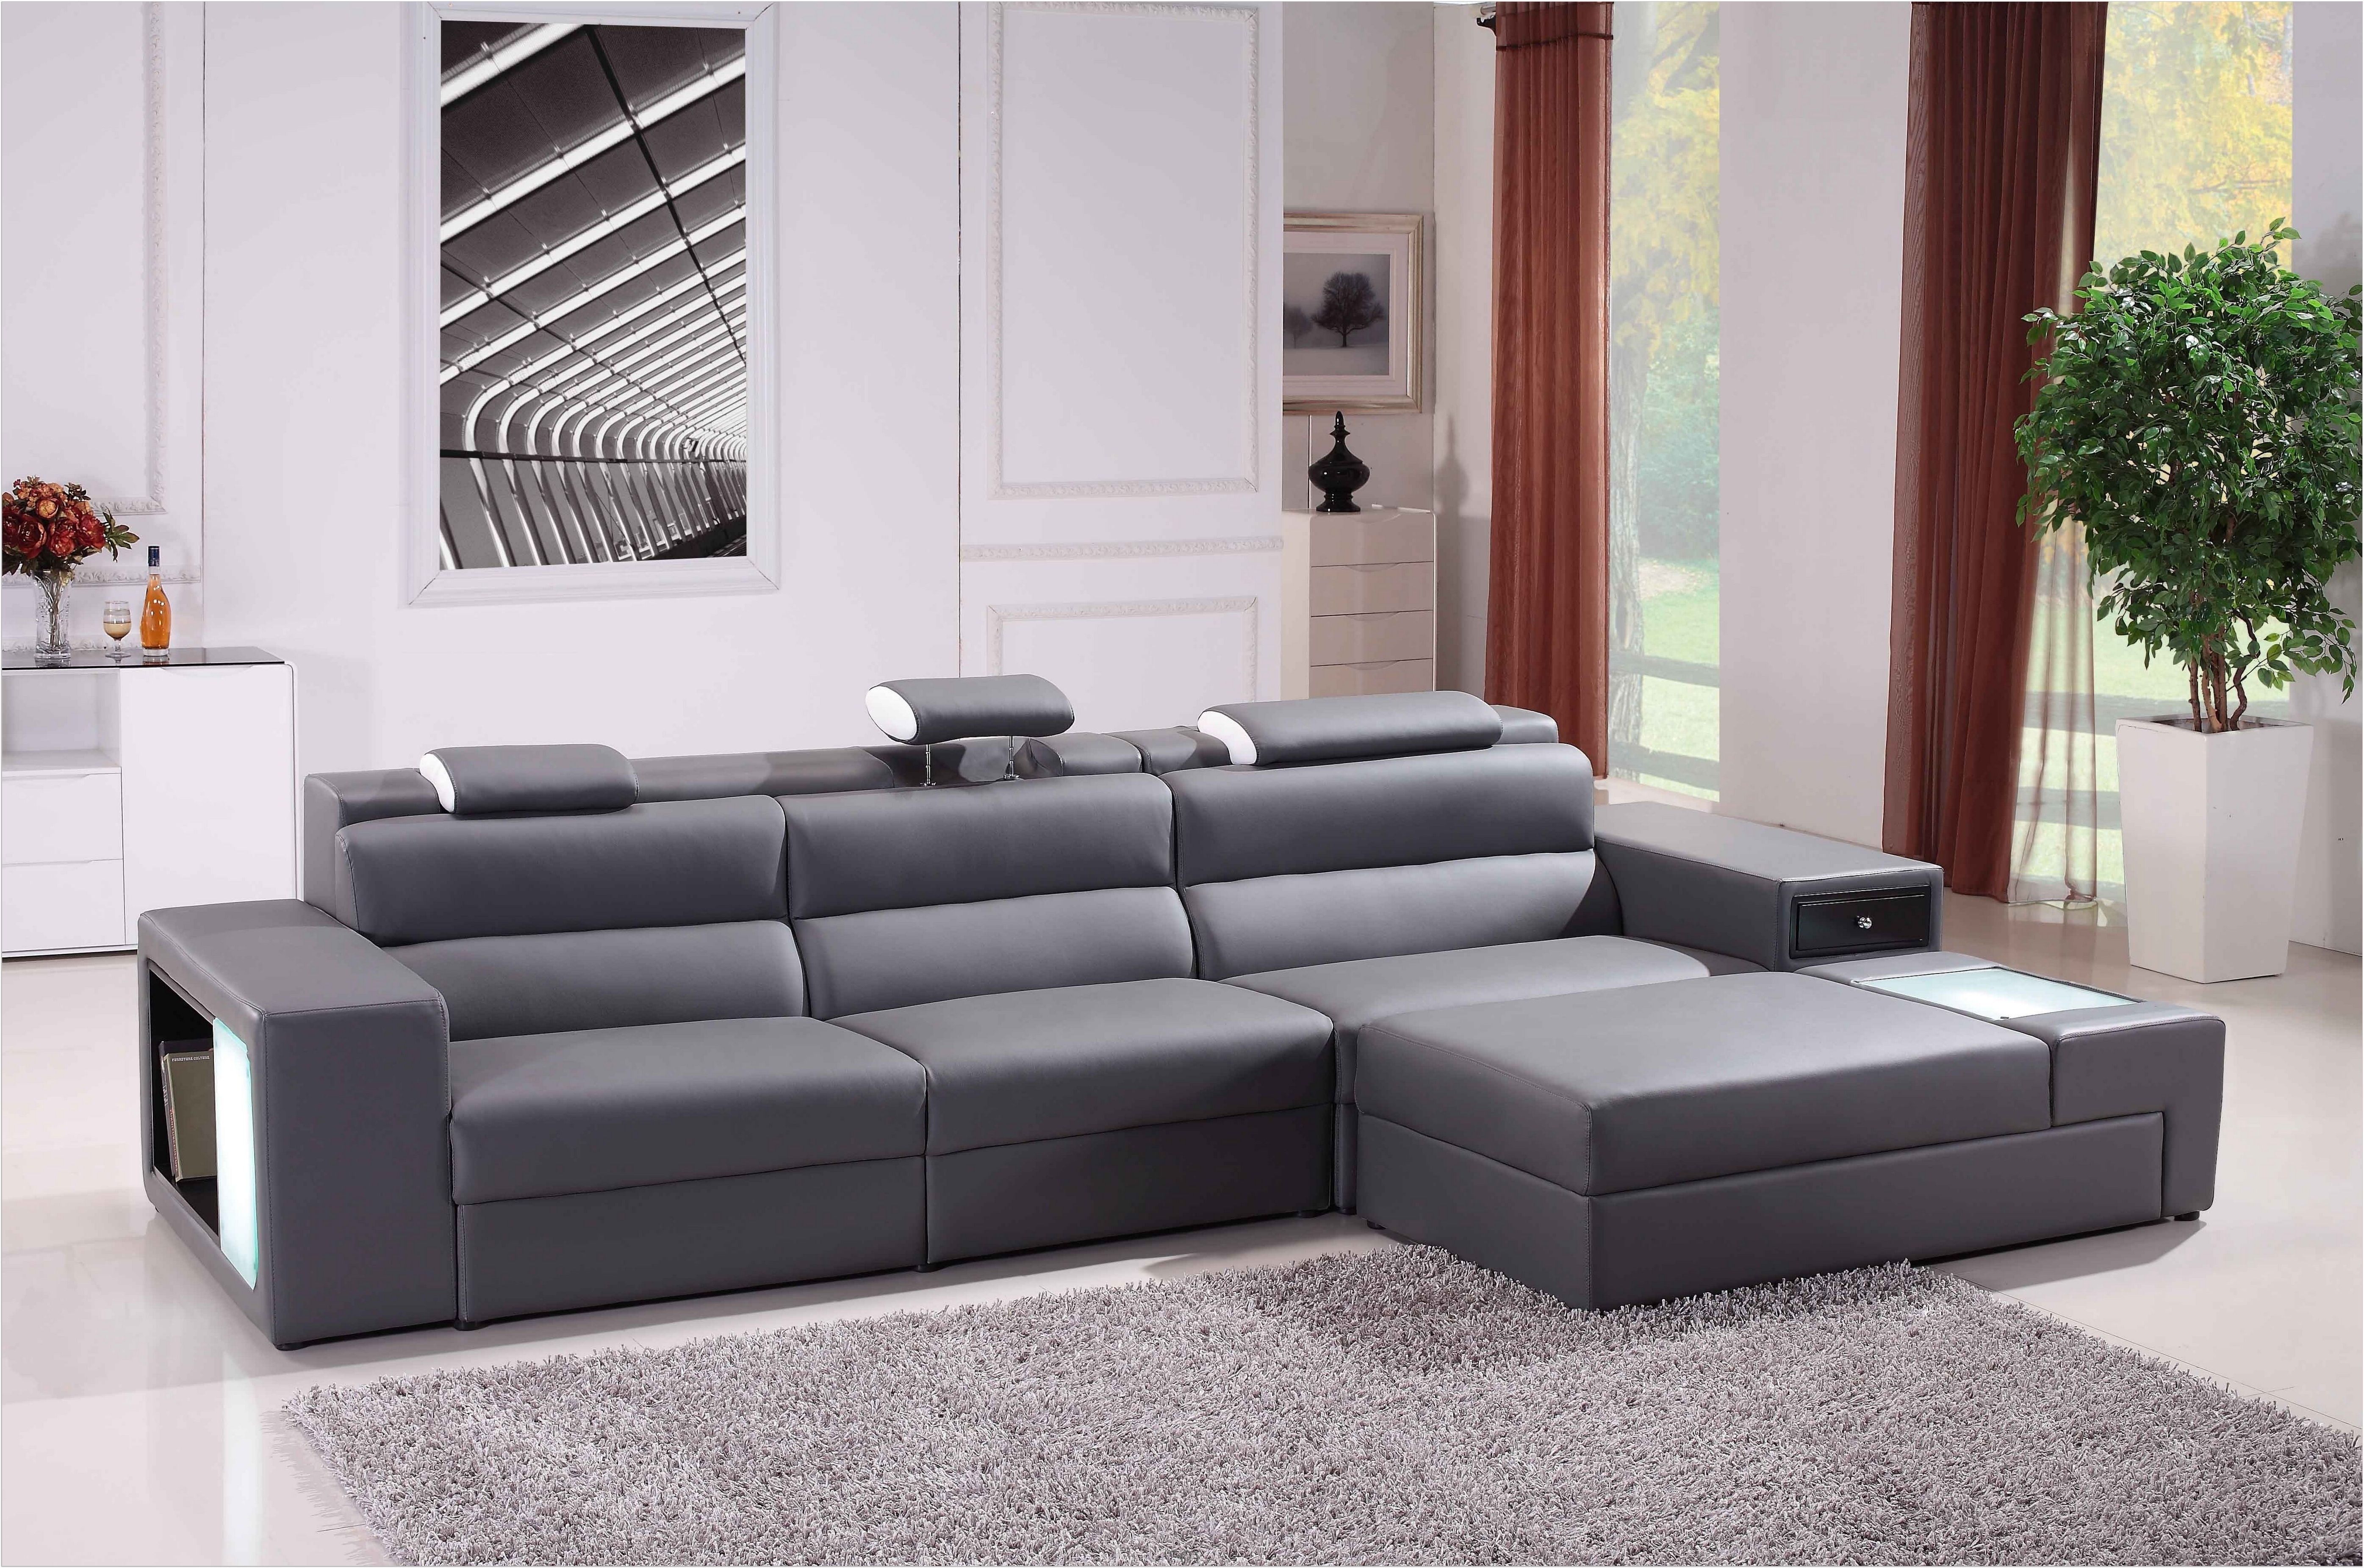 Coastal Sectional Sofa – Home Design Ideas And Pictures In Trendy Quatrine Sectional Sofas (View 19 of 20)